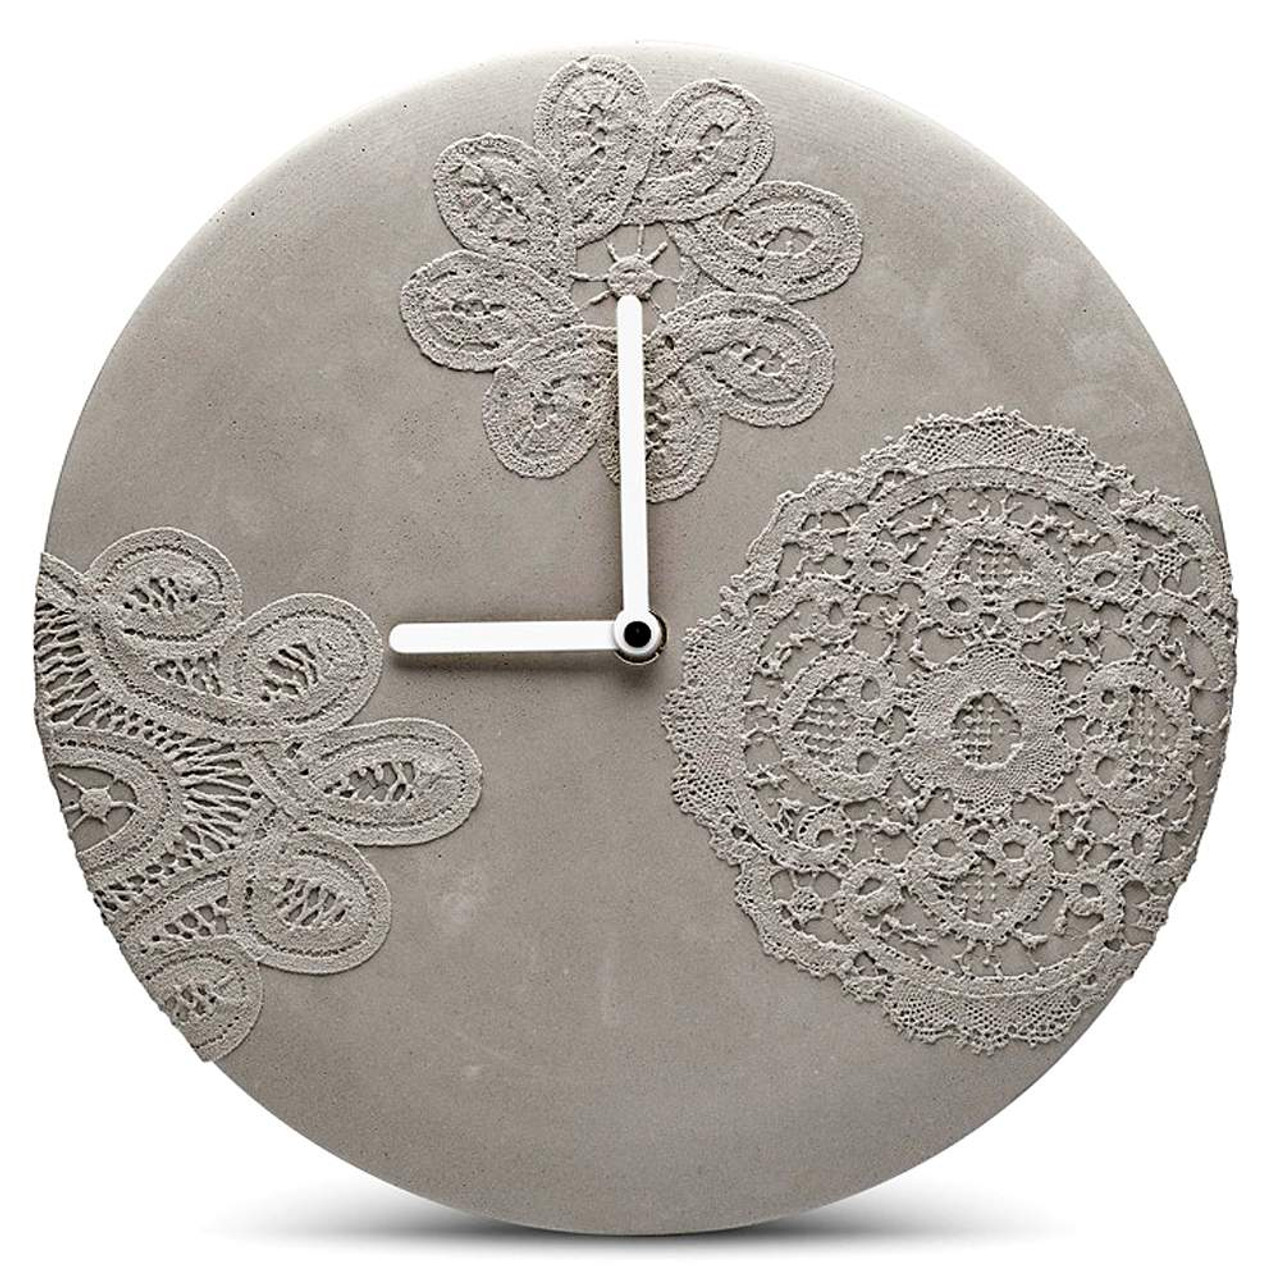 Concrete wall clocks and other objects